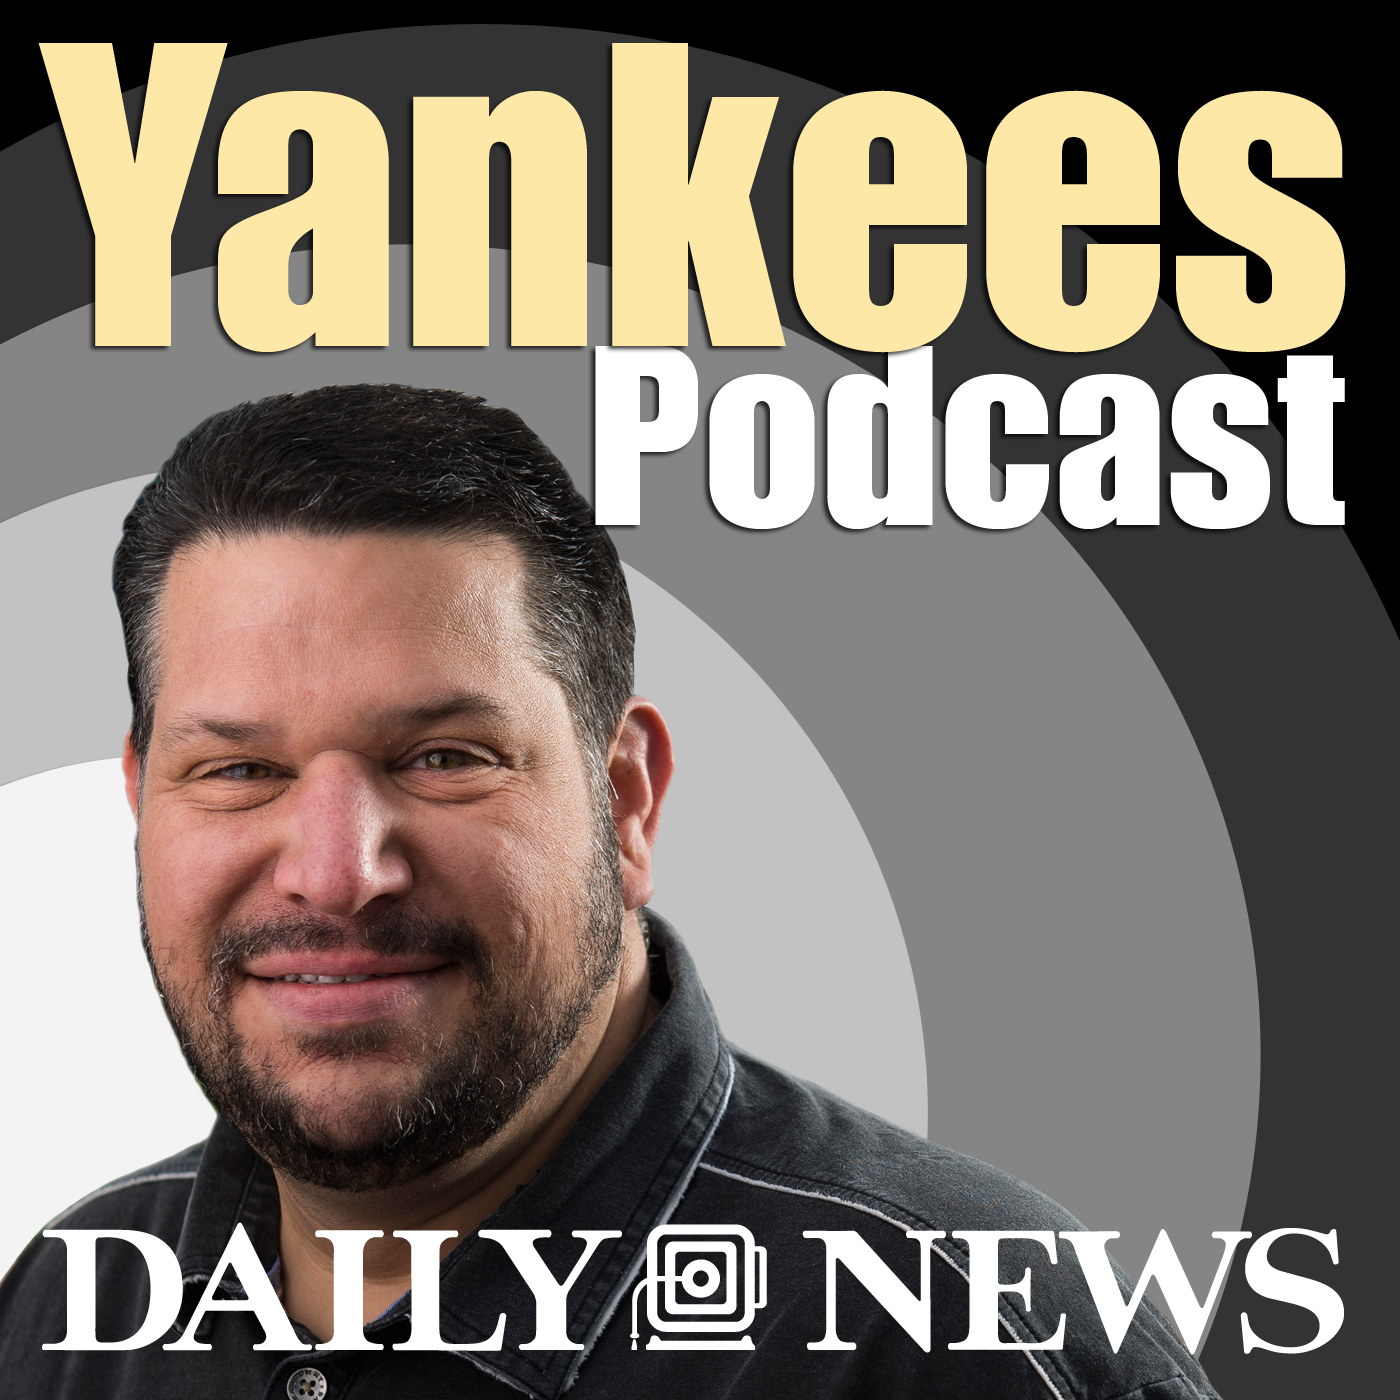 Daily News Yankees Podcast show art